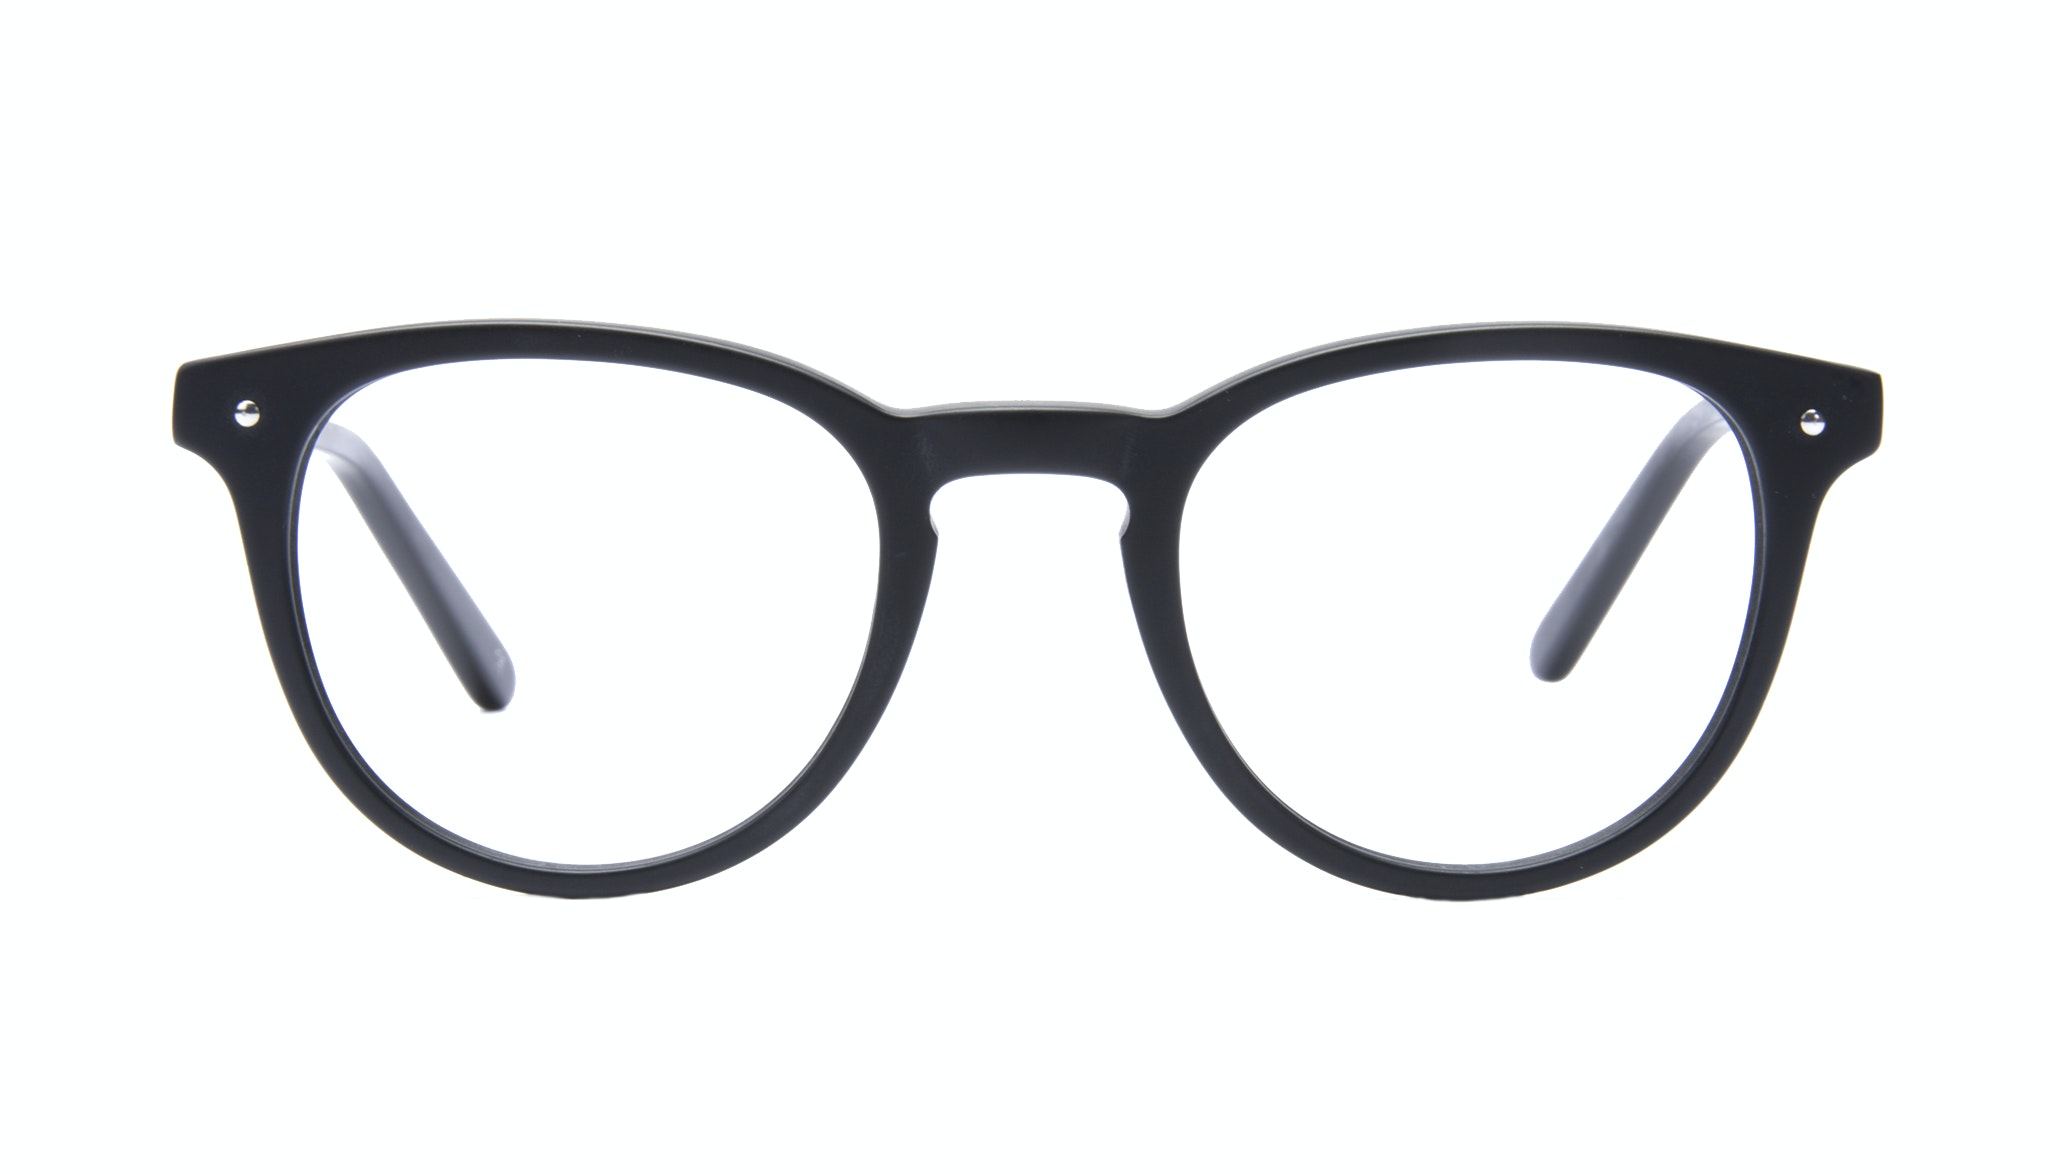 Affordable Fashion Glasses Round Eyeglasses Men Cult Matt Black